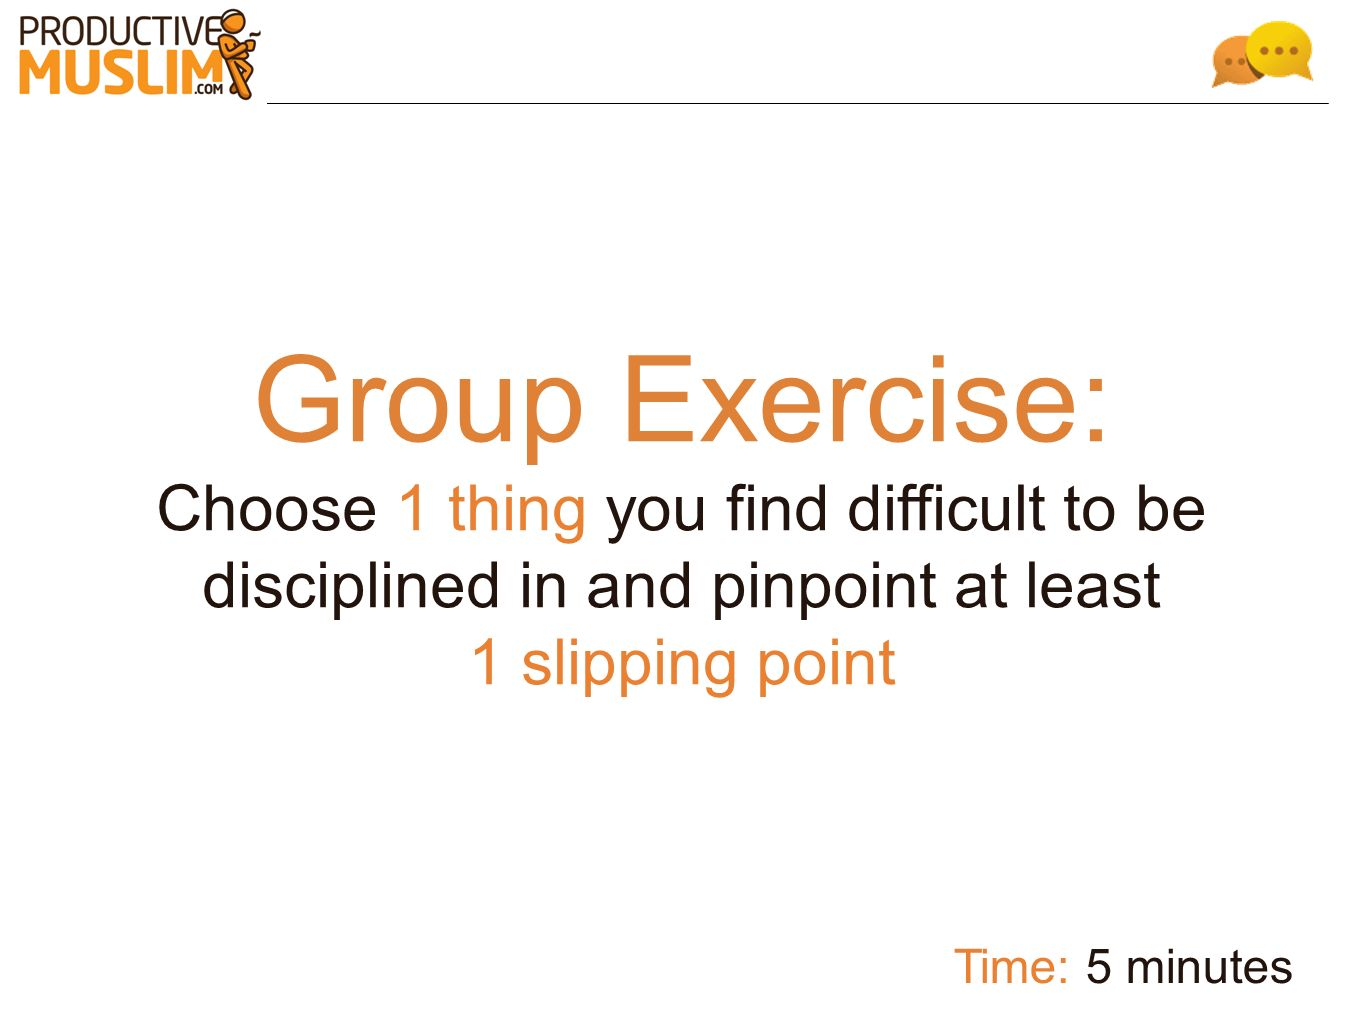 Group Exercise: Choose 1 thing you find difficult to be disciplined in and pinpoint at least. 1 slipping point.